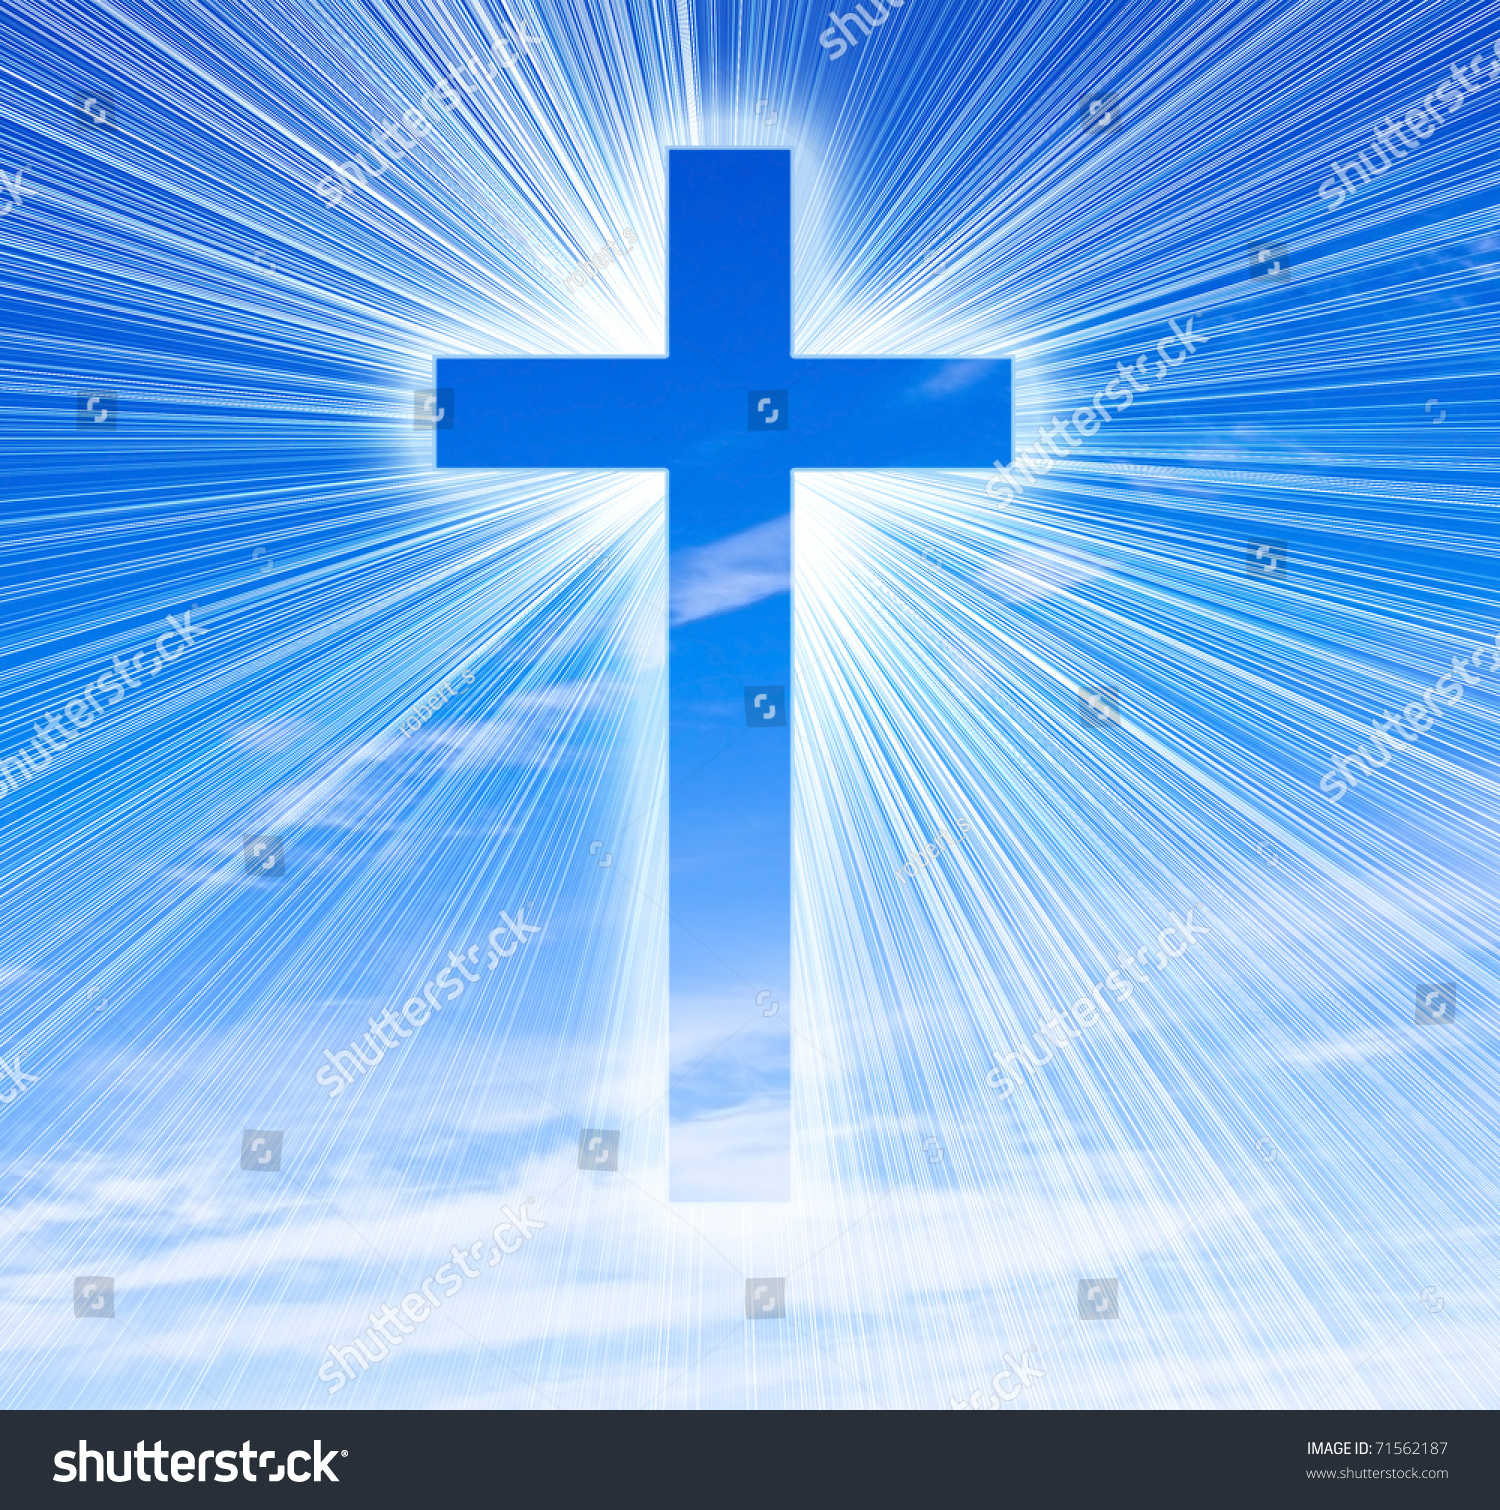 Silhouette of the holy cross on background of storm clouds stock - Glowing Cross On A Sky